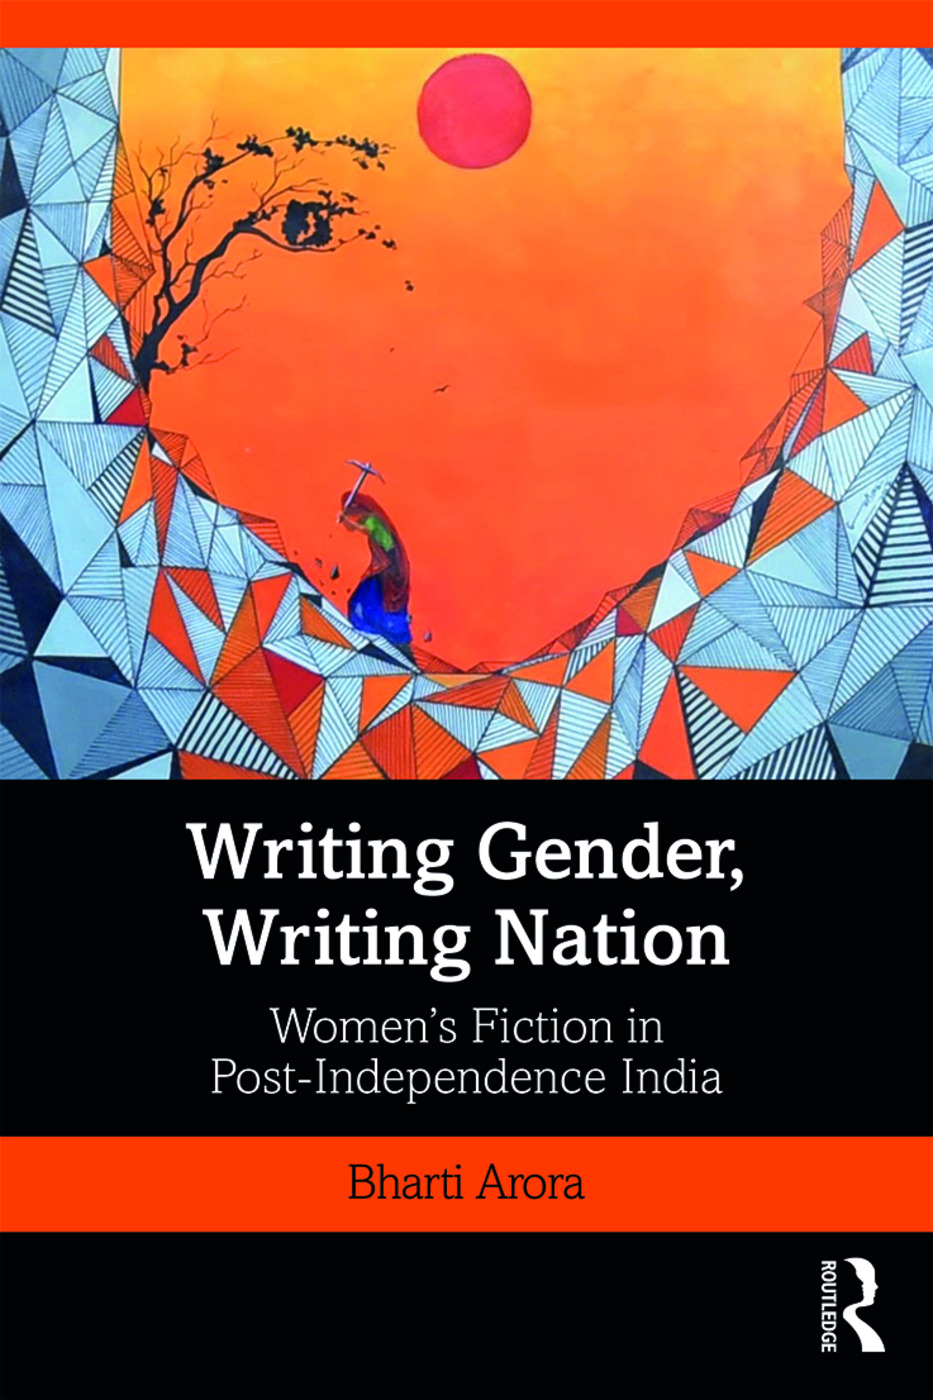 Writing Gender, Writing Nation: Women's Fiction in Post-Independence India book cover